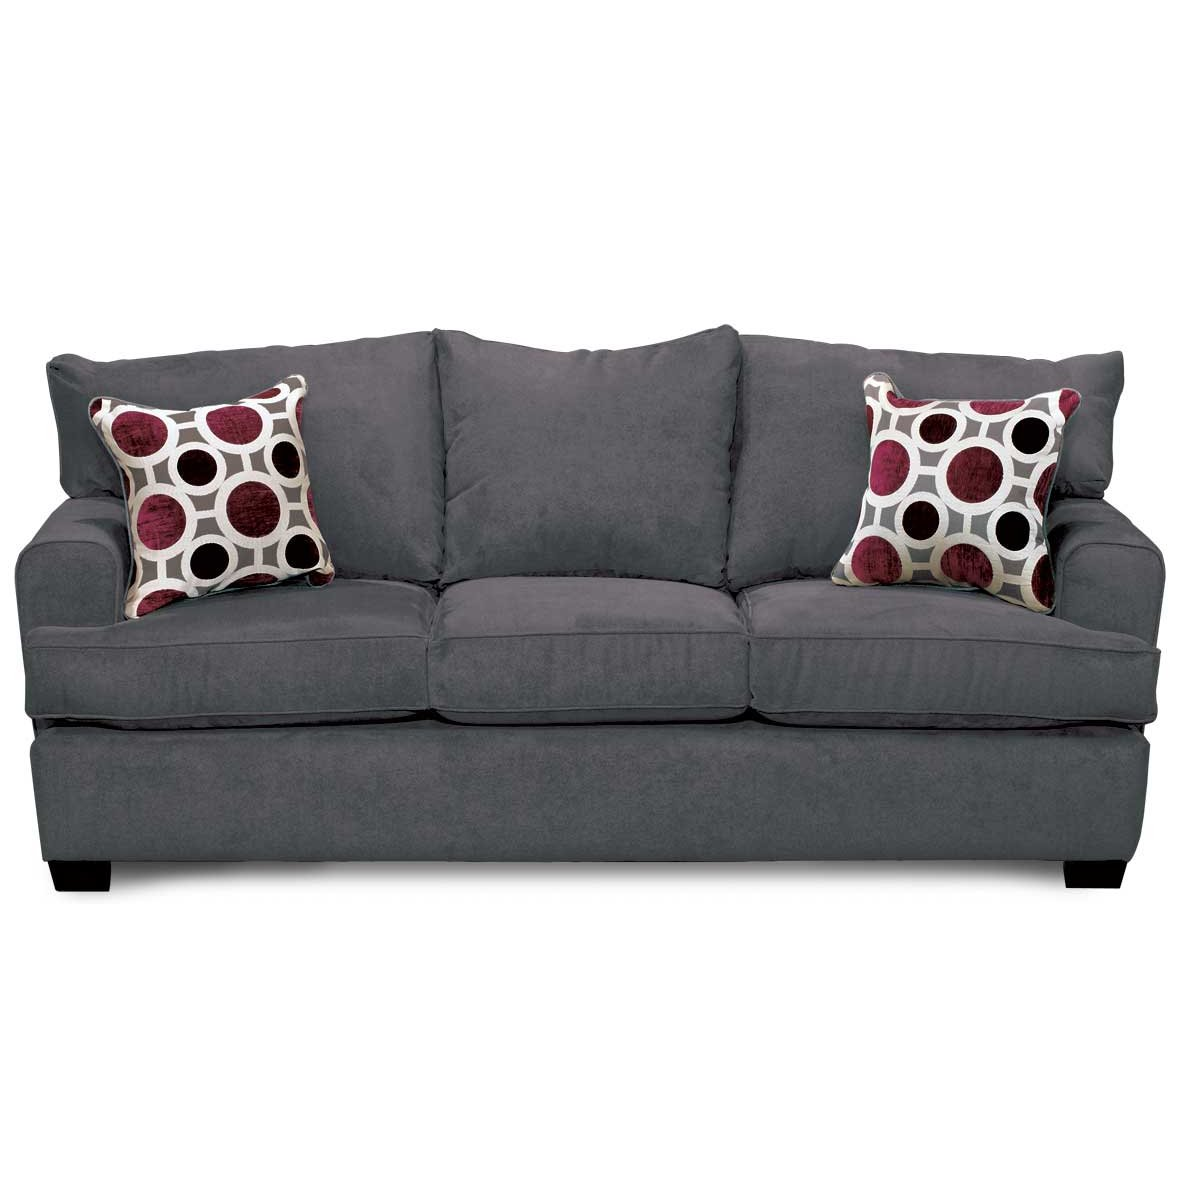 Sofa couch bed friheten sleeper sectional 3 seat w storage for Casual couch